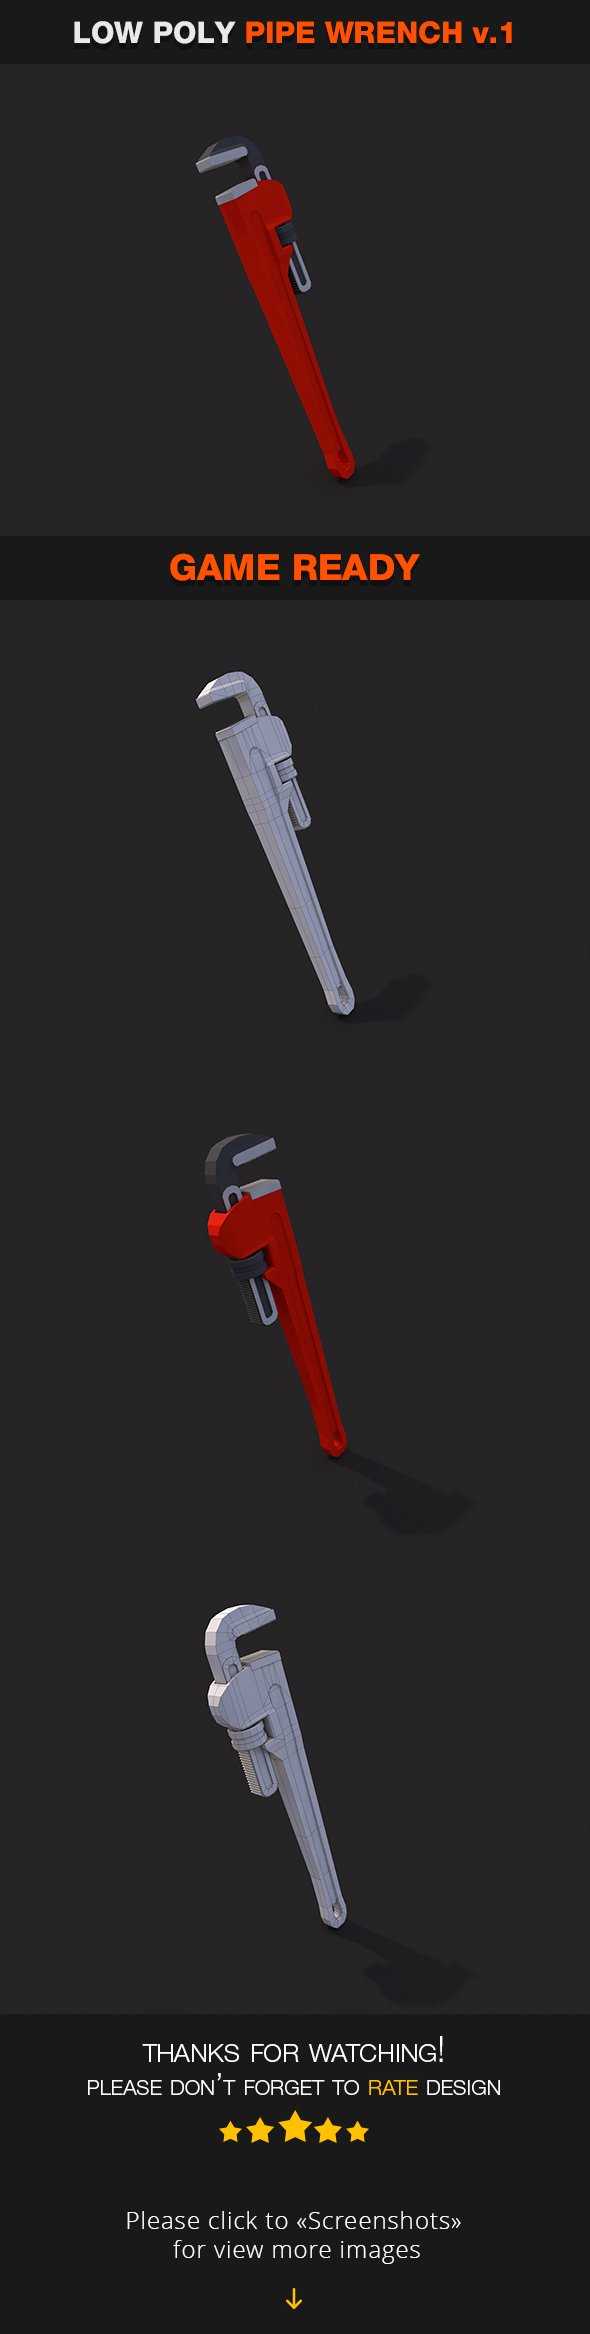 Low Poly Pipe Wrench v.1 - 3DOcean Item for Sale